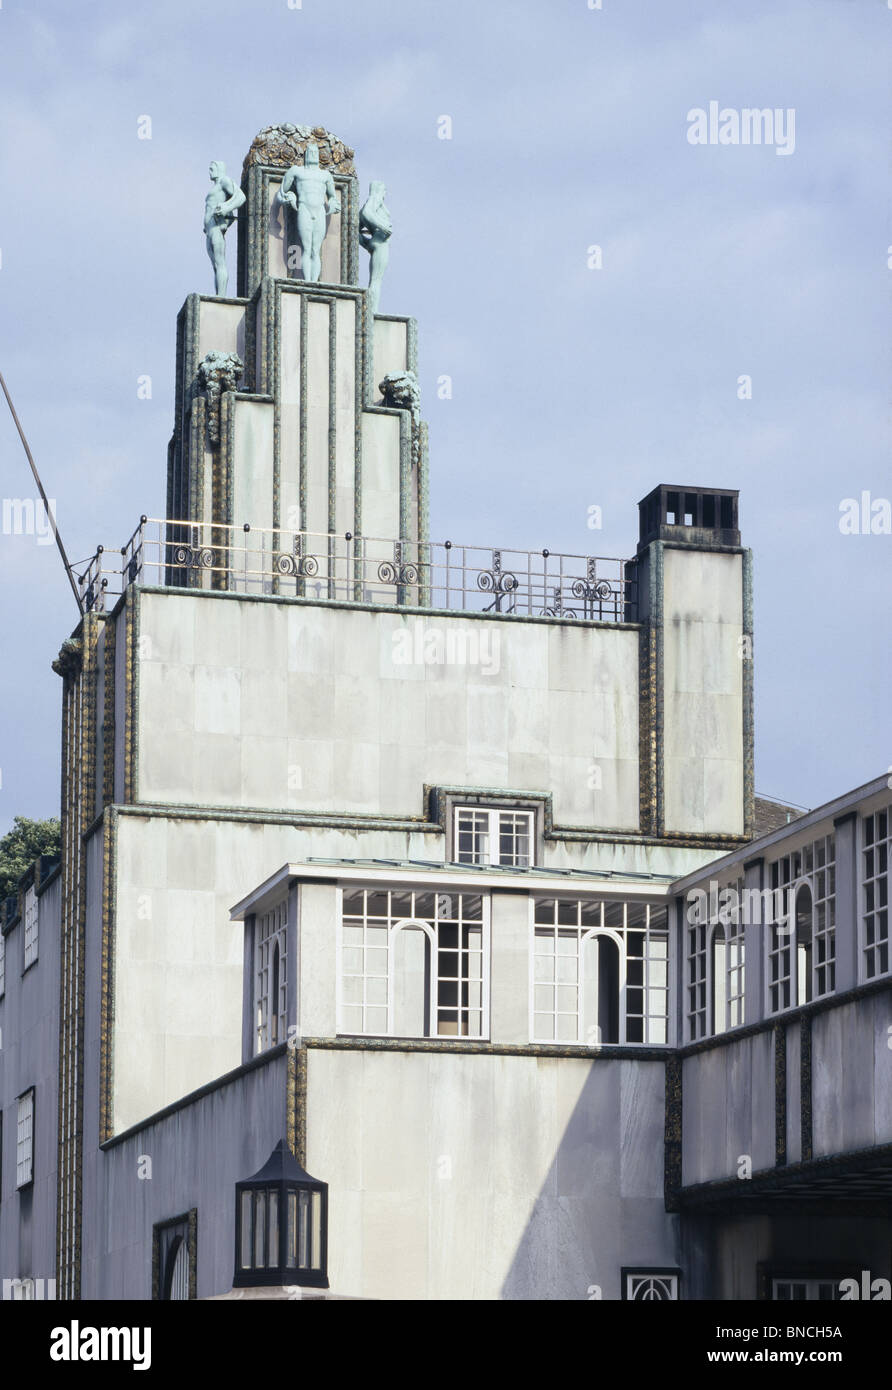 The Palais Stoclet Brussels, Belgium,  designed by Josef Hoffmann (Vienna Secession architect designer)1905-11. - Stock Image